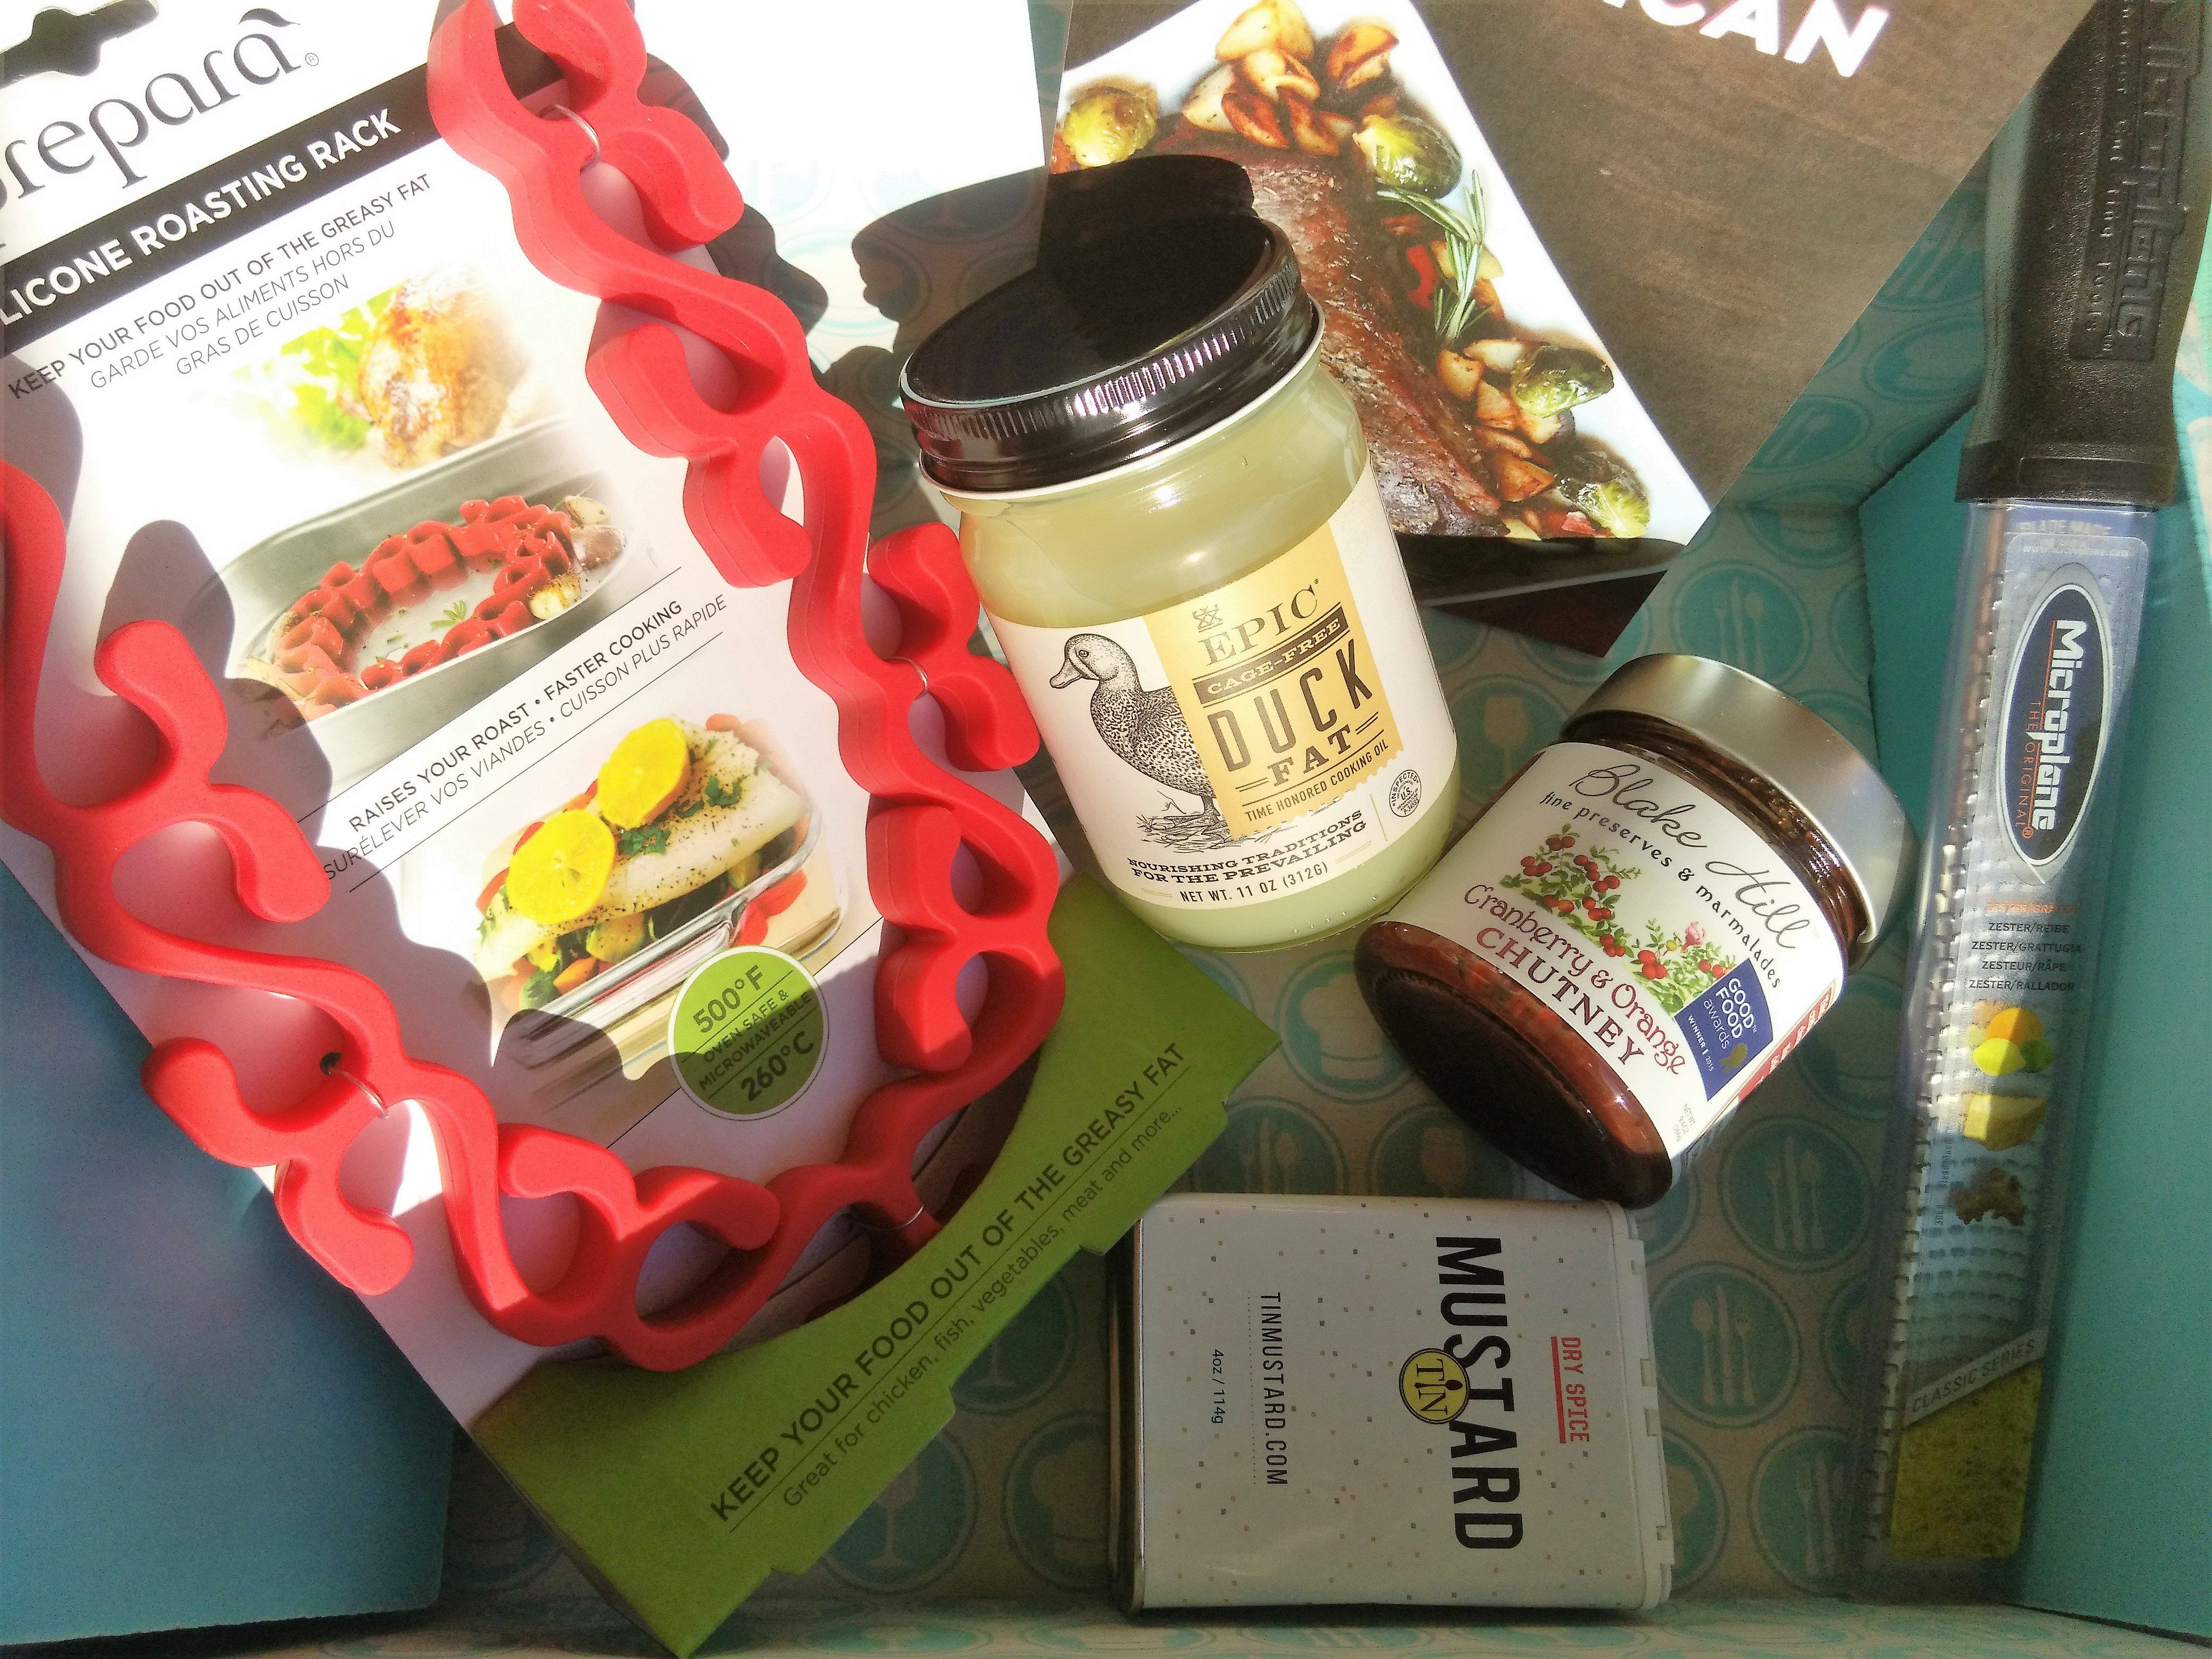 Here's our review of the November 2016 Hamptons Lane New American-themed box! Use our coupon code to save $10 off your first month!     November 2016 Hamptons Lane Subscription Box Review & Coupon: New American Box →  https://hellosubscription.com/2016/12/november-2016-hamptons-lane-subscription-box-review-coupon-new-american-box/ #HamptonsLane  #subscriptionbox